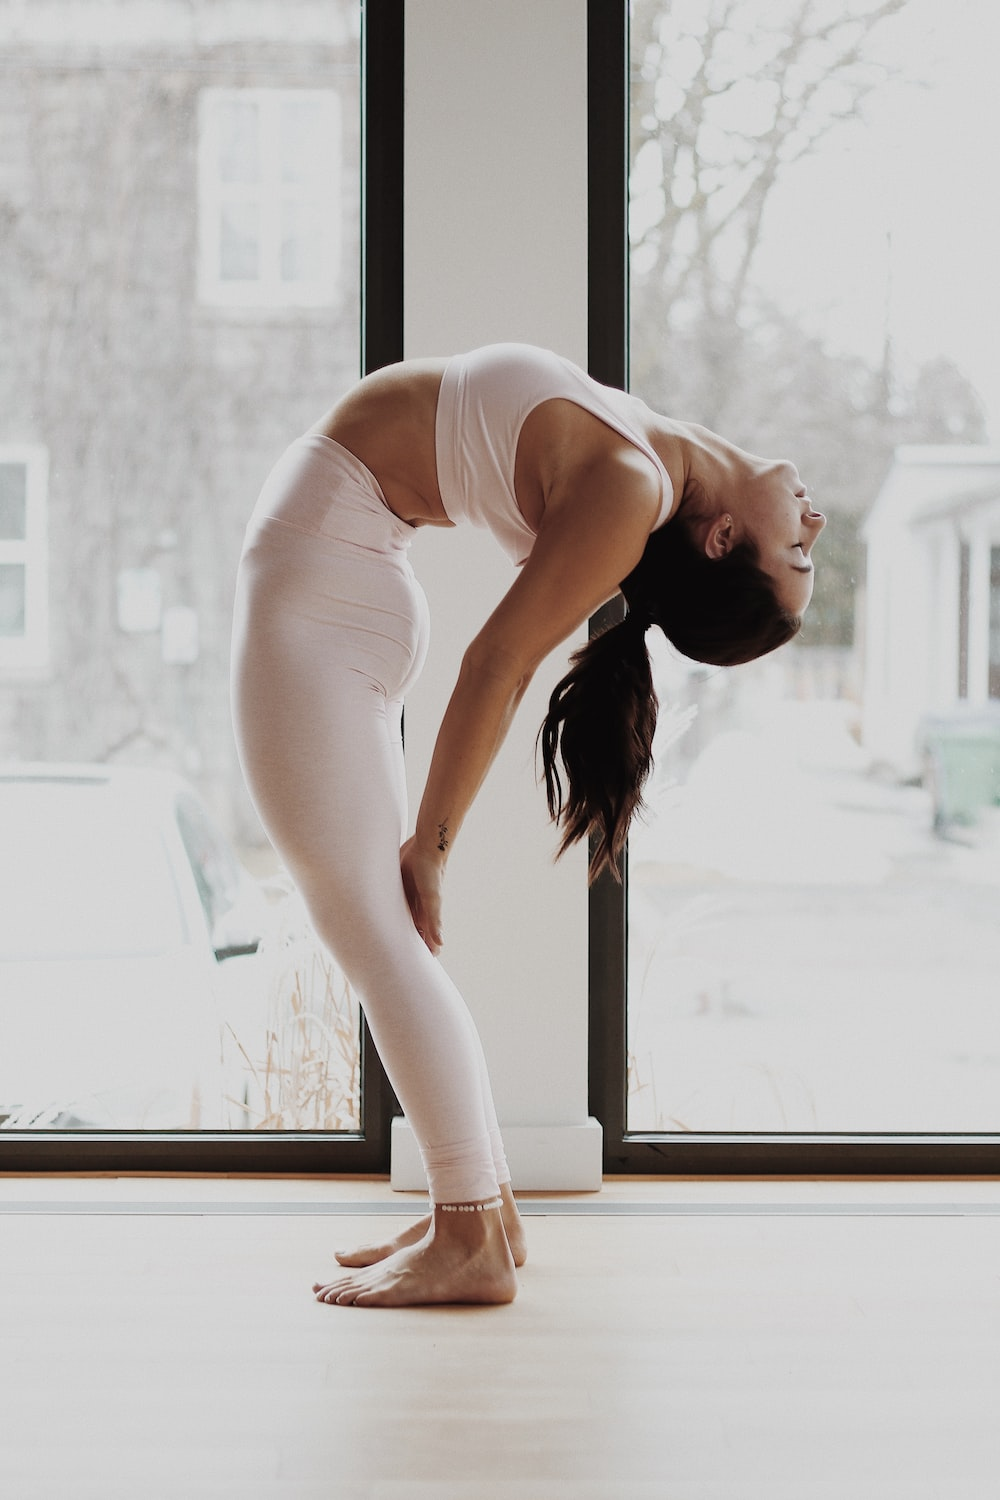 woman in white tank top and white pants bending her body by the window